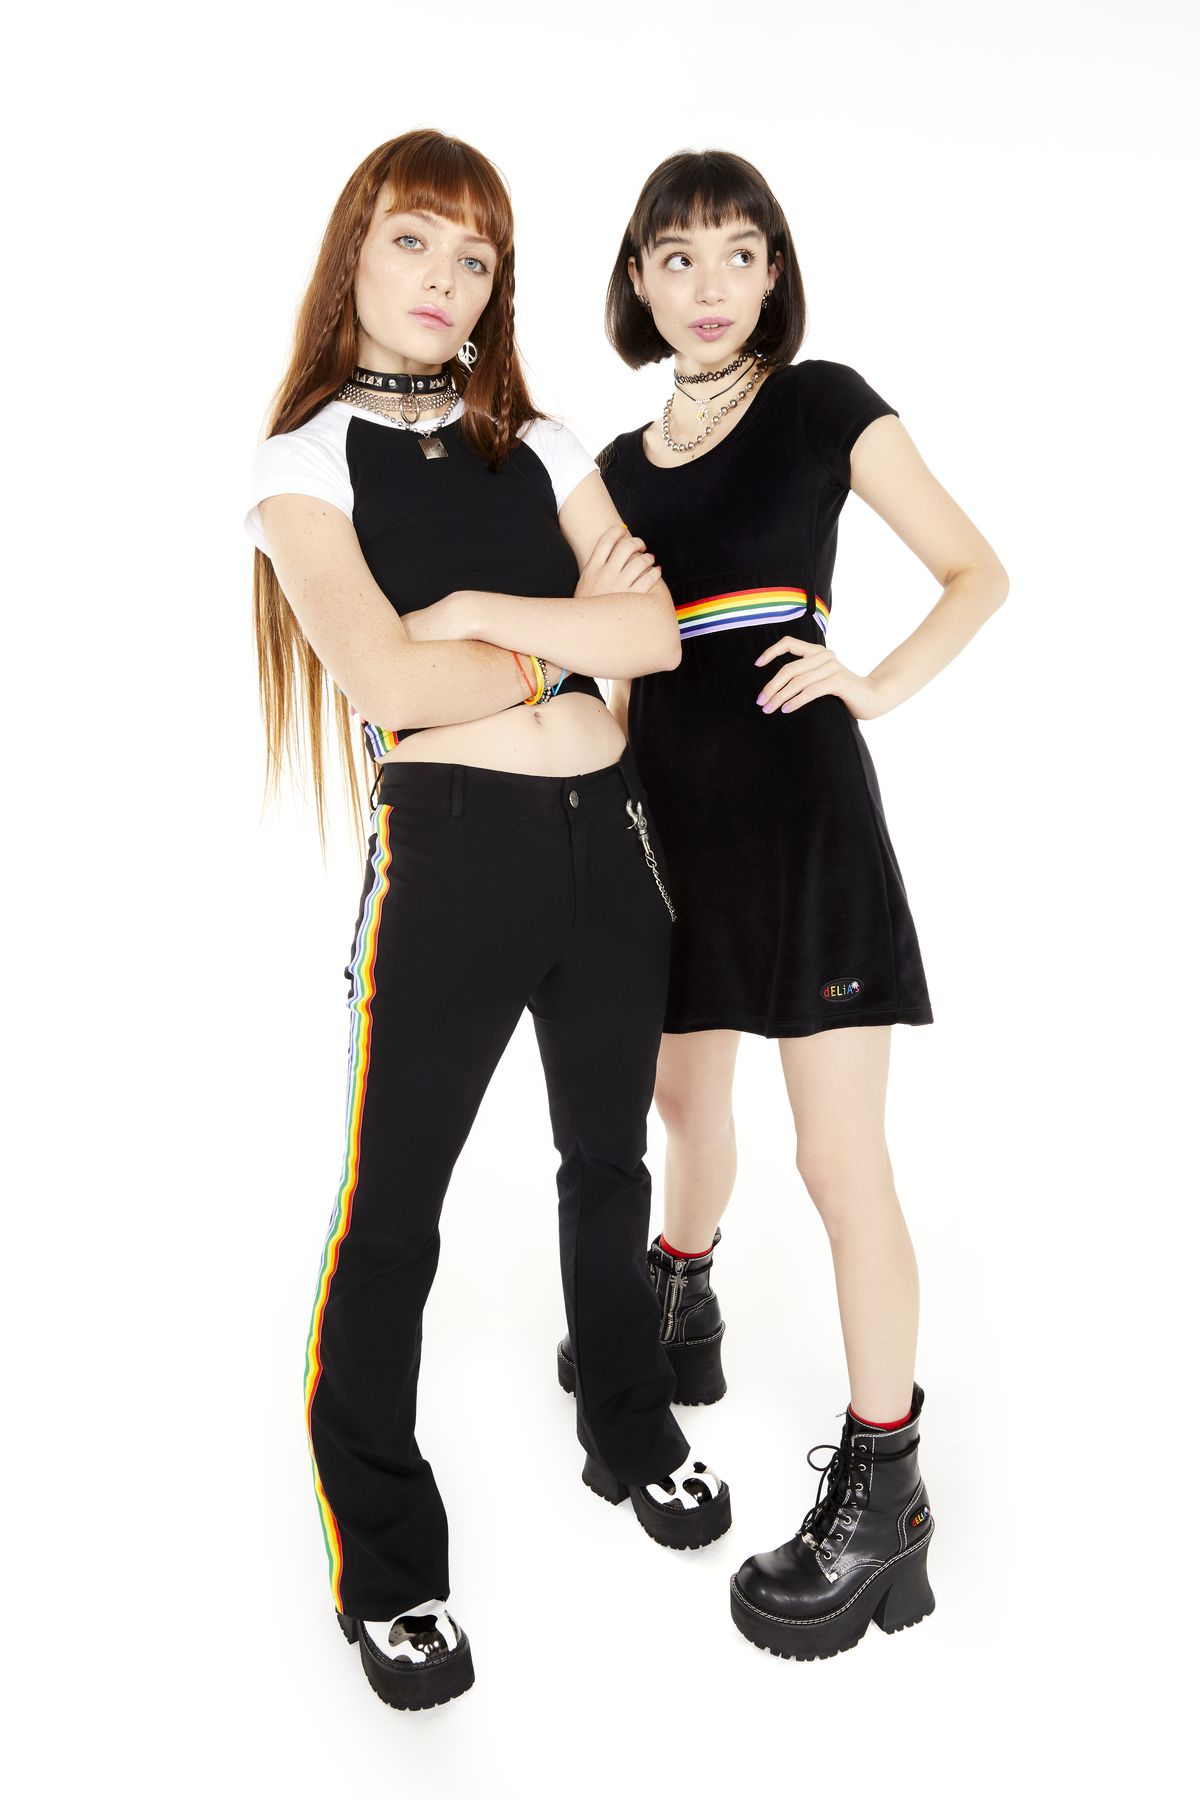 Two models wear black and rainbow outfits.